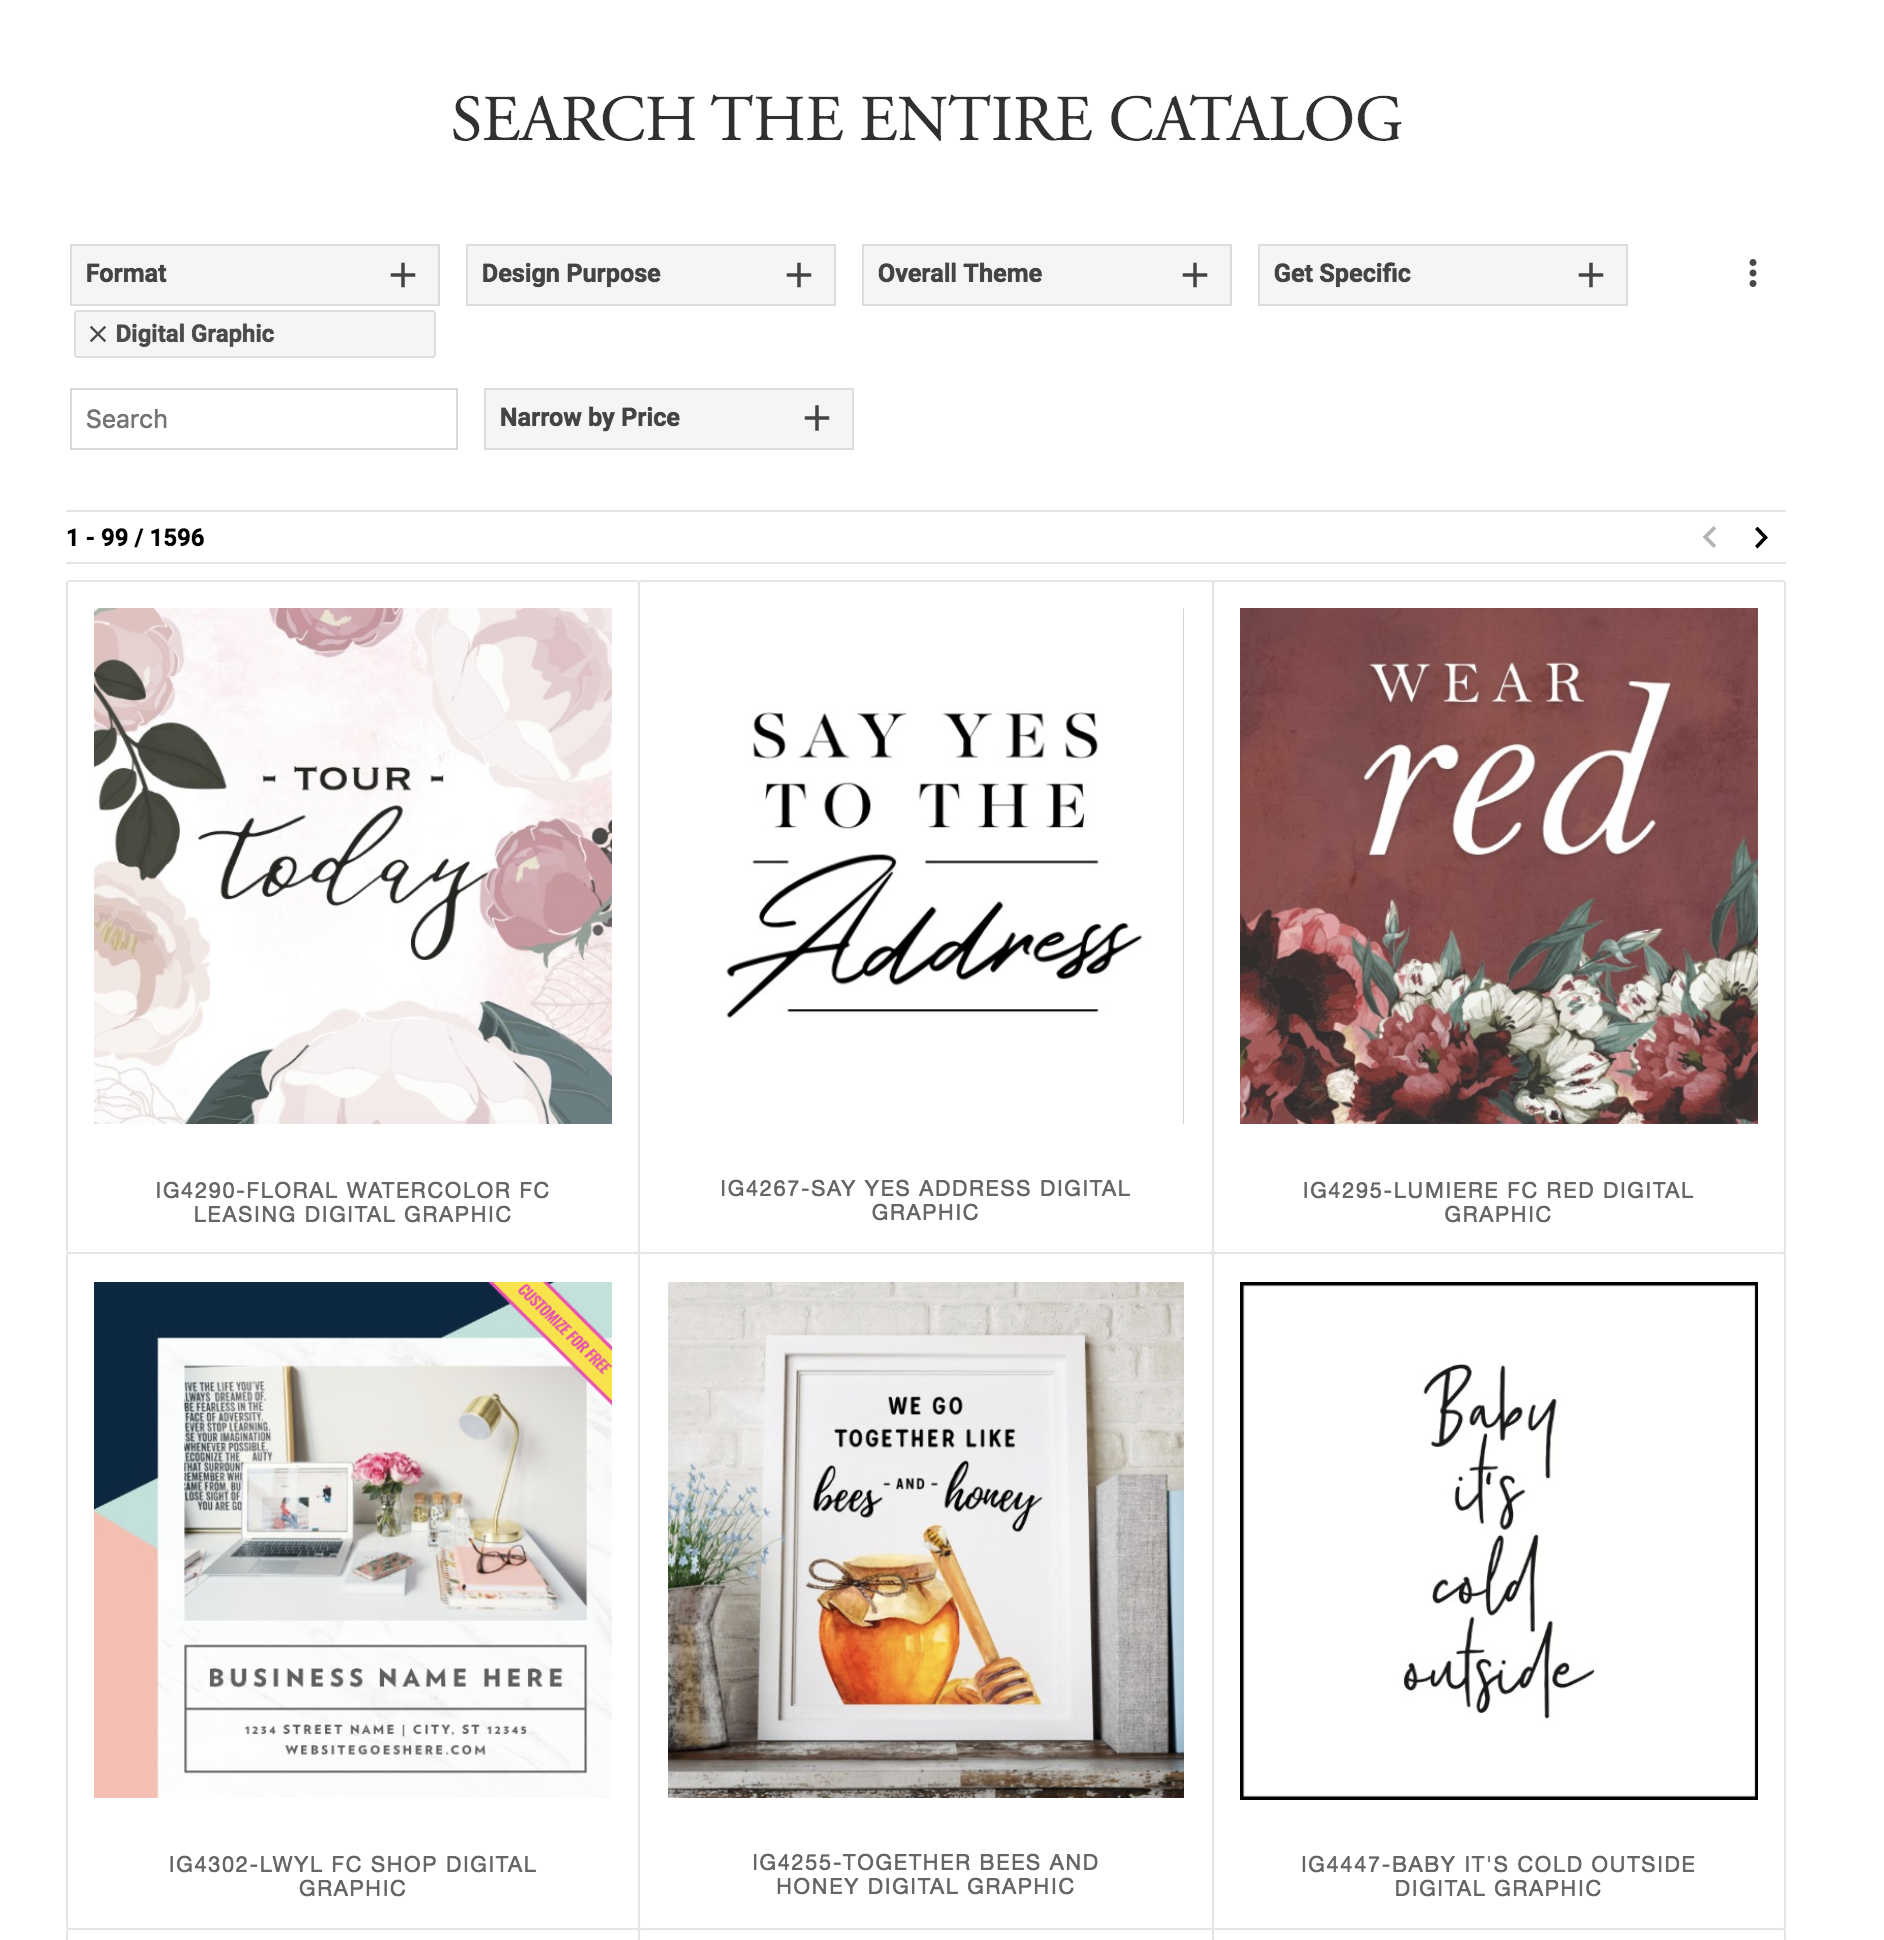 Grab your digital graphics from The Sprout catalog. Search  here . Select  Digital Graphics  under  Format .